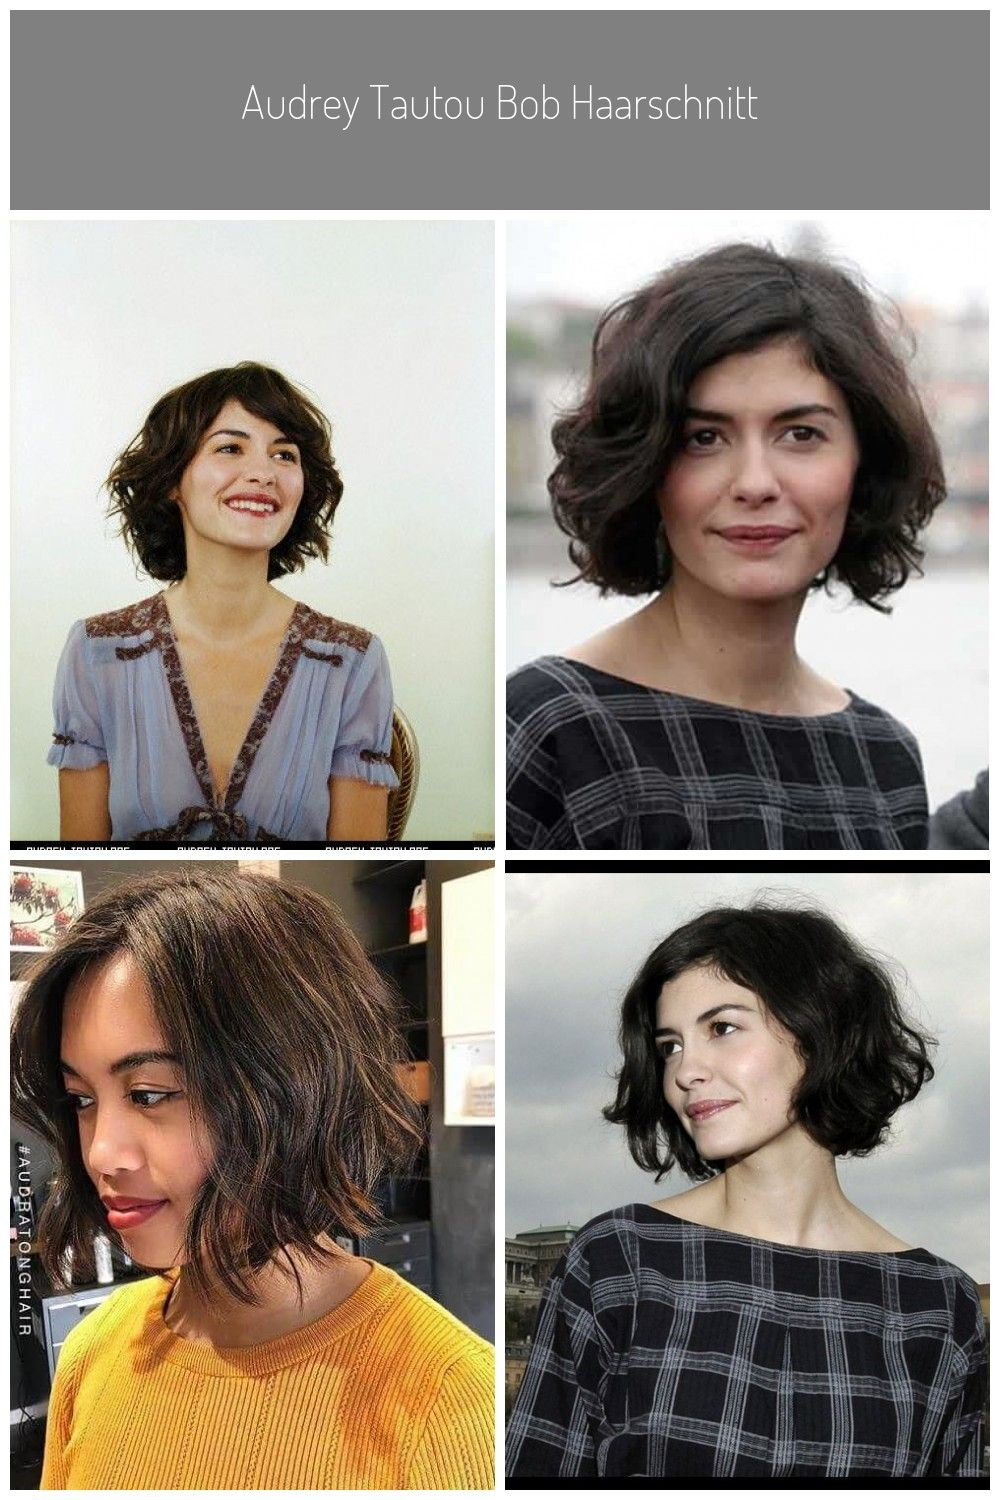 Chic French Bob Hairstyles - Food Ideas #audrey tautou haircut